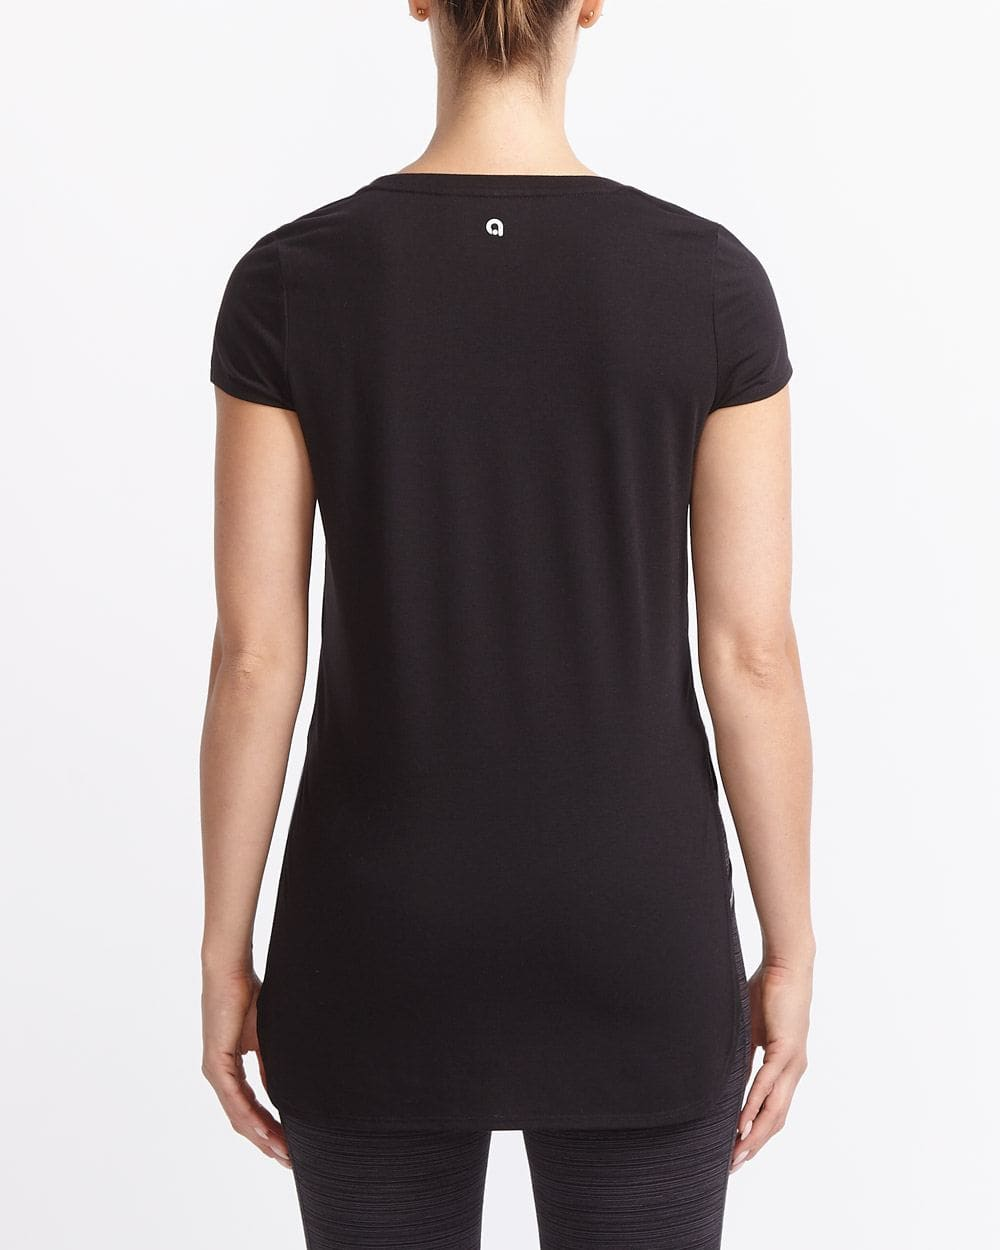 Hyba Short Sleeve T-Shirt